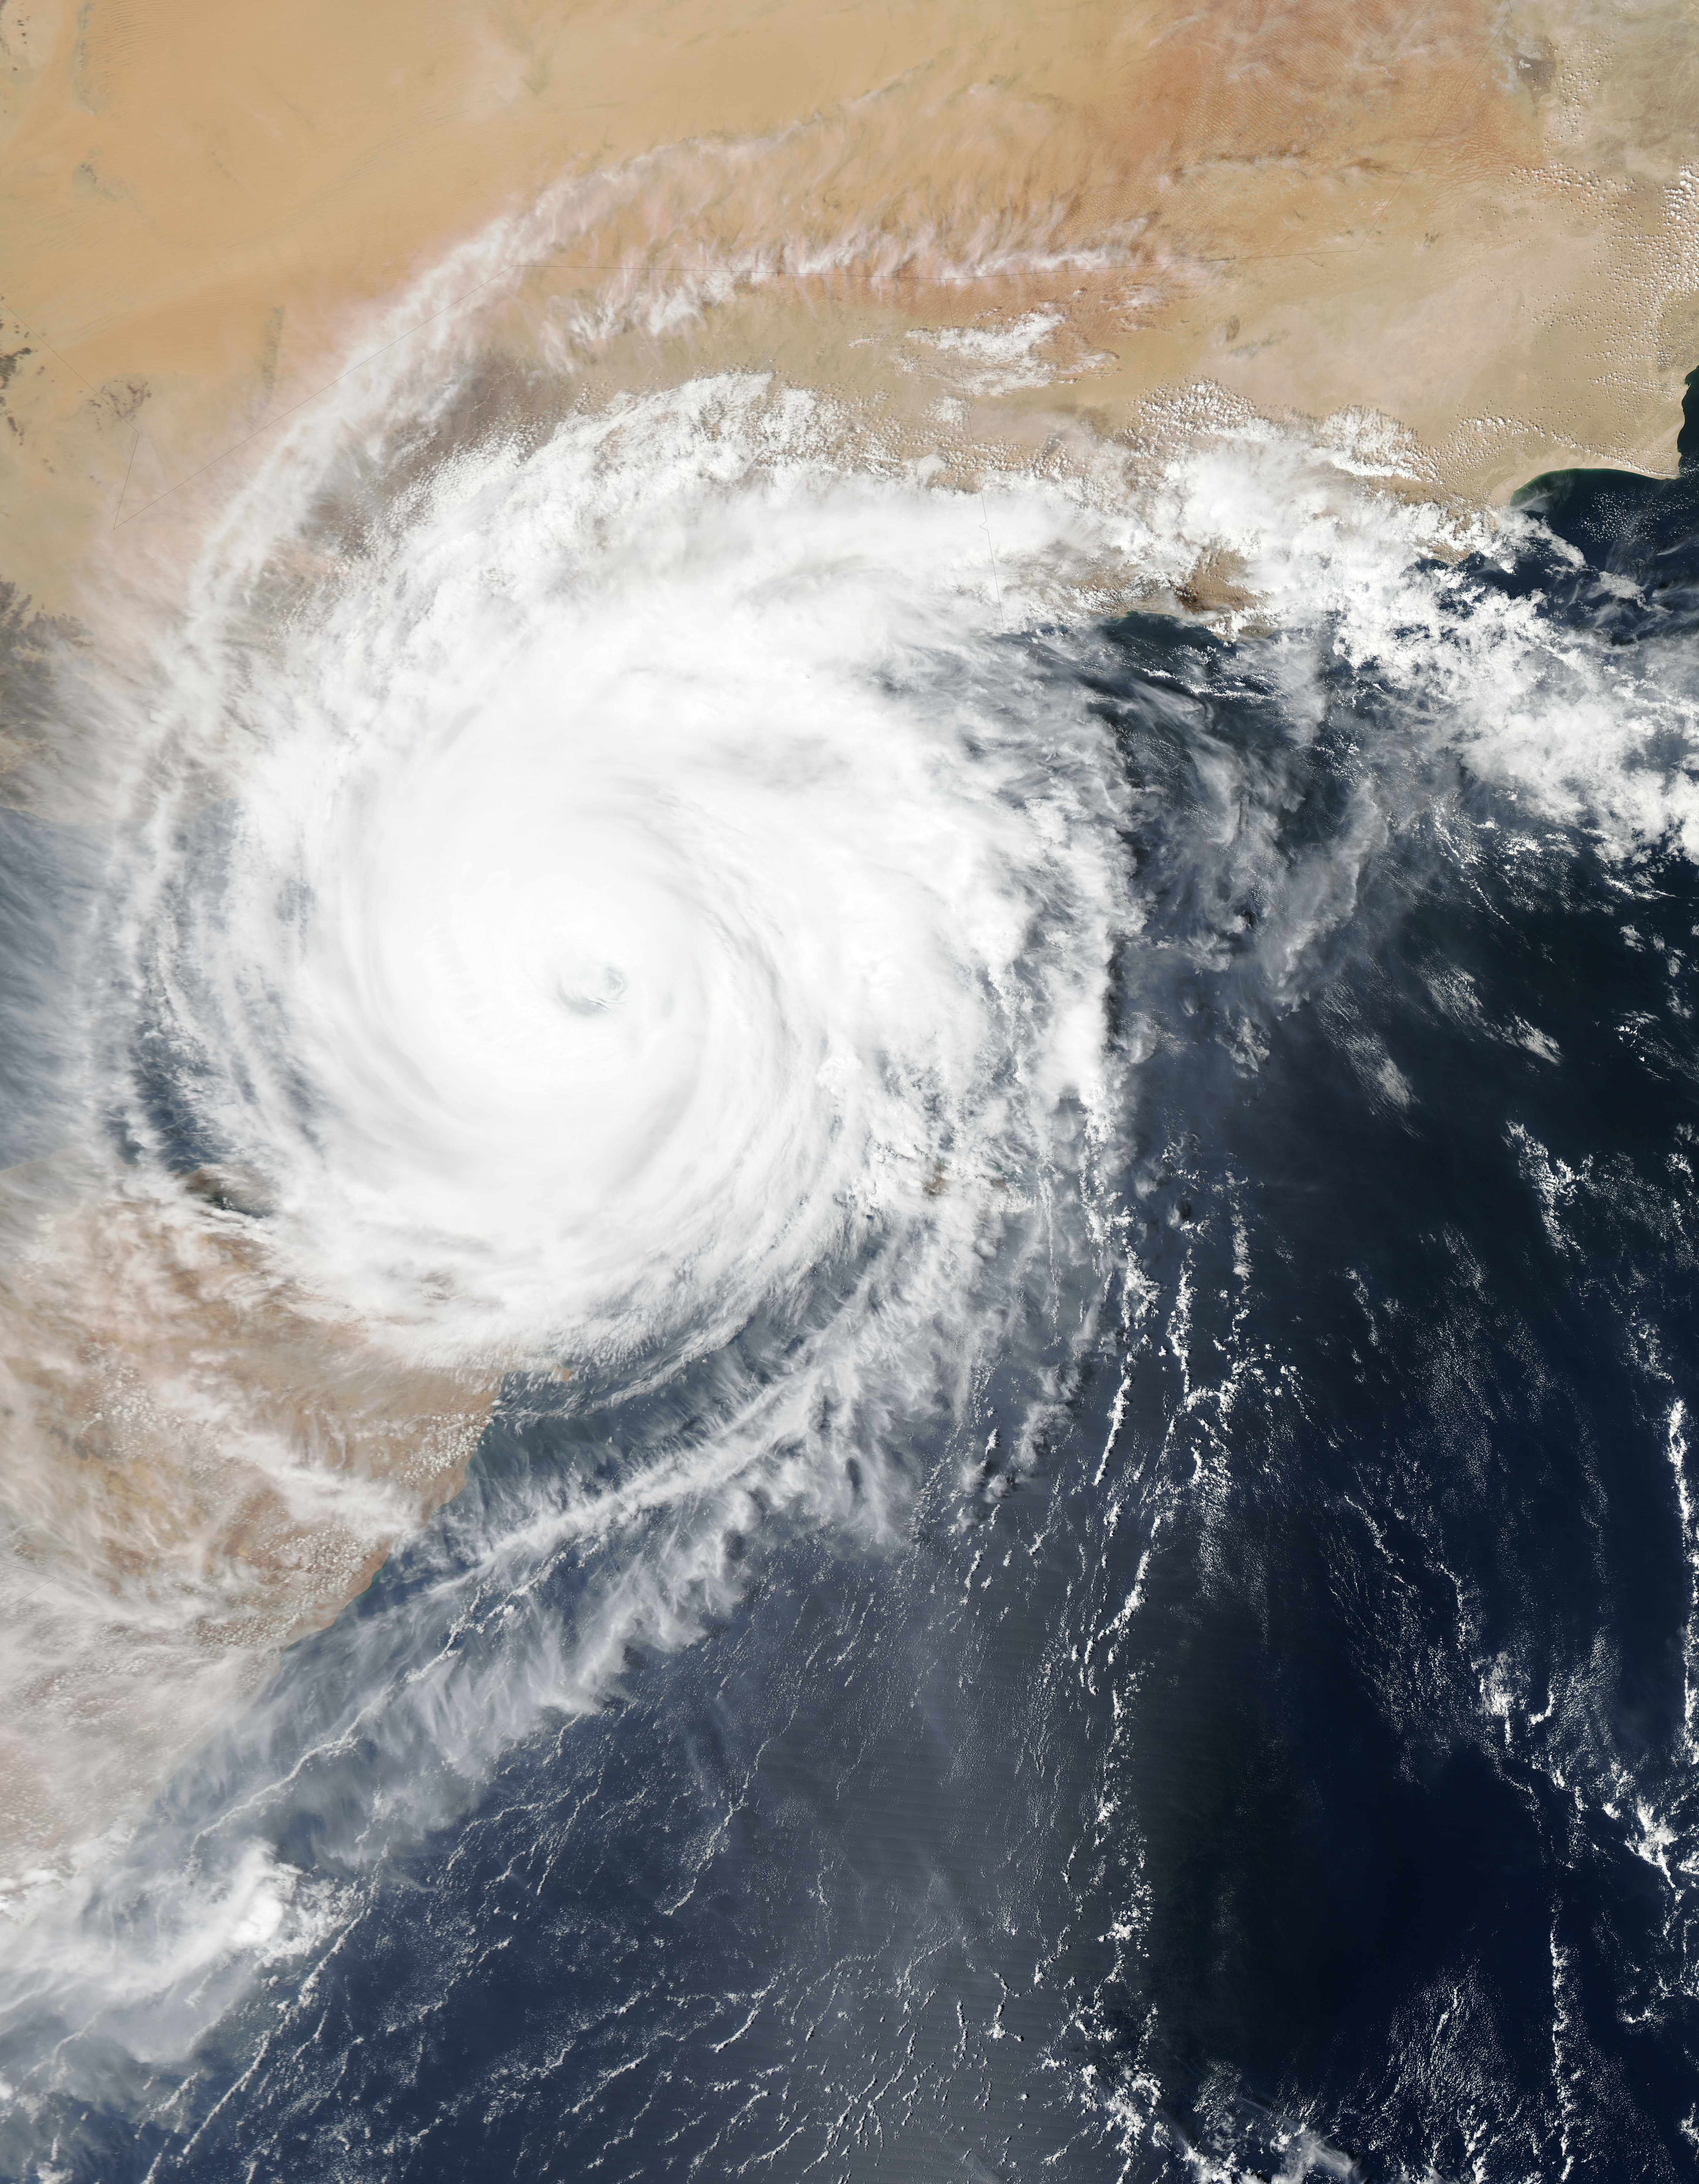 A hurricane or storm over Yemen